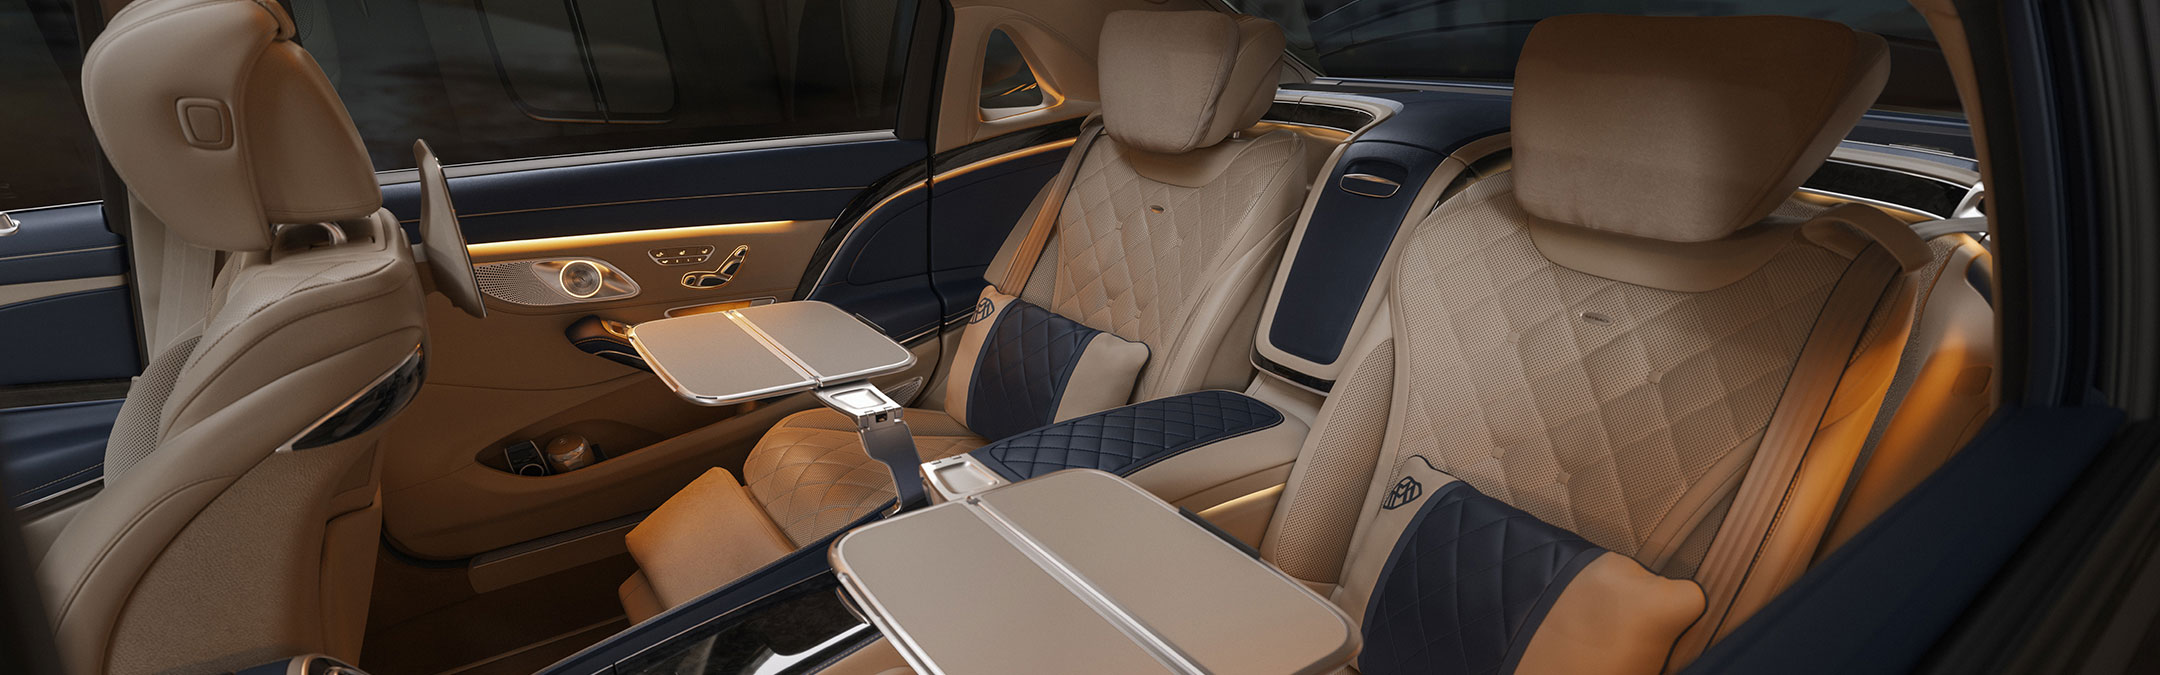 2019 Mercedes-Maybach Innovation